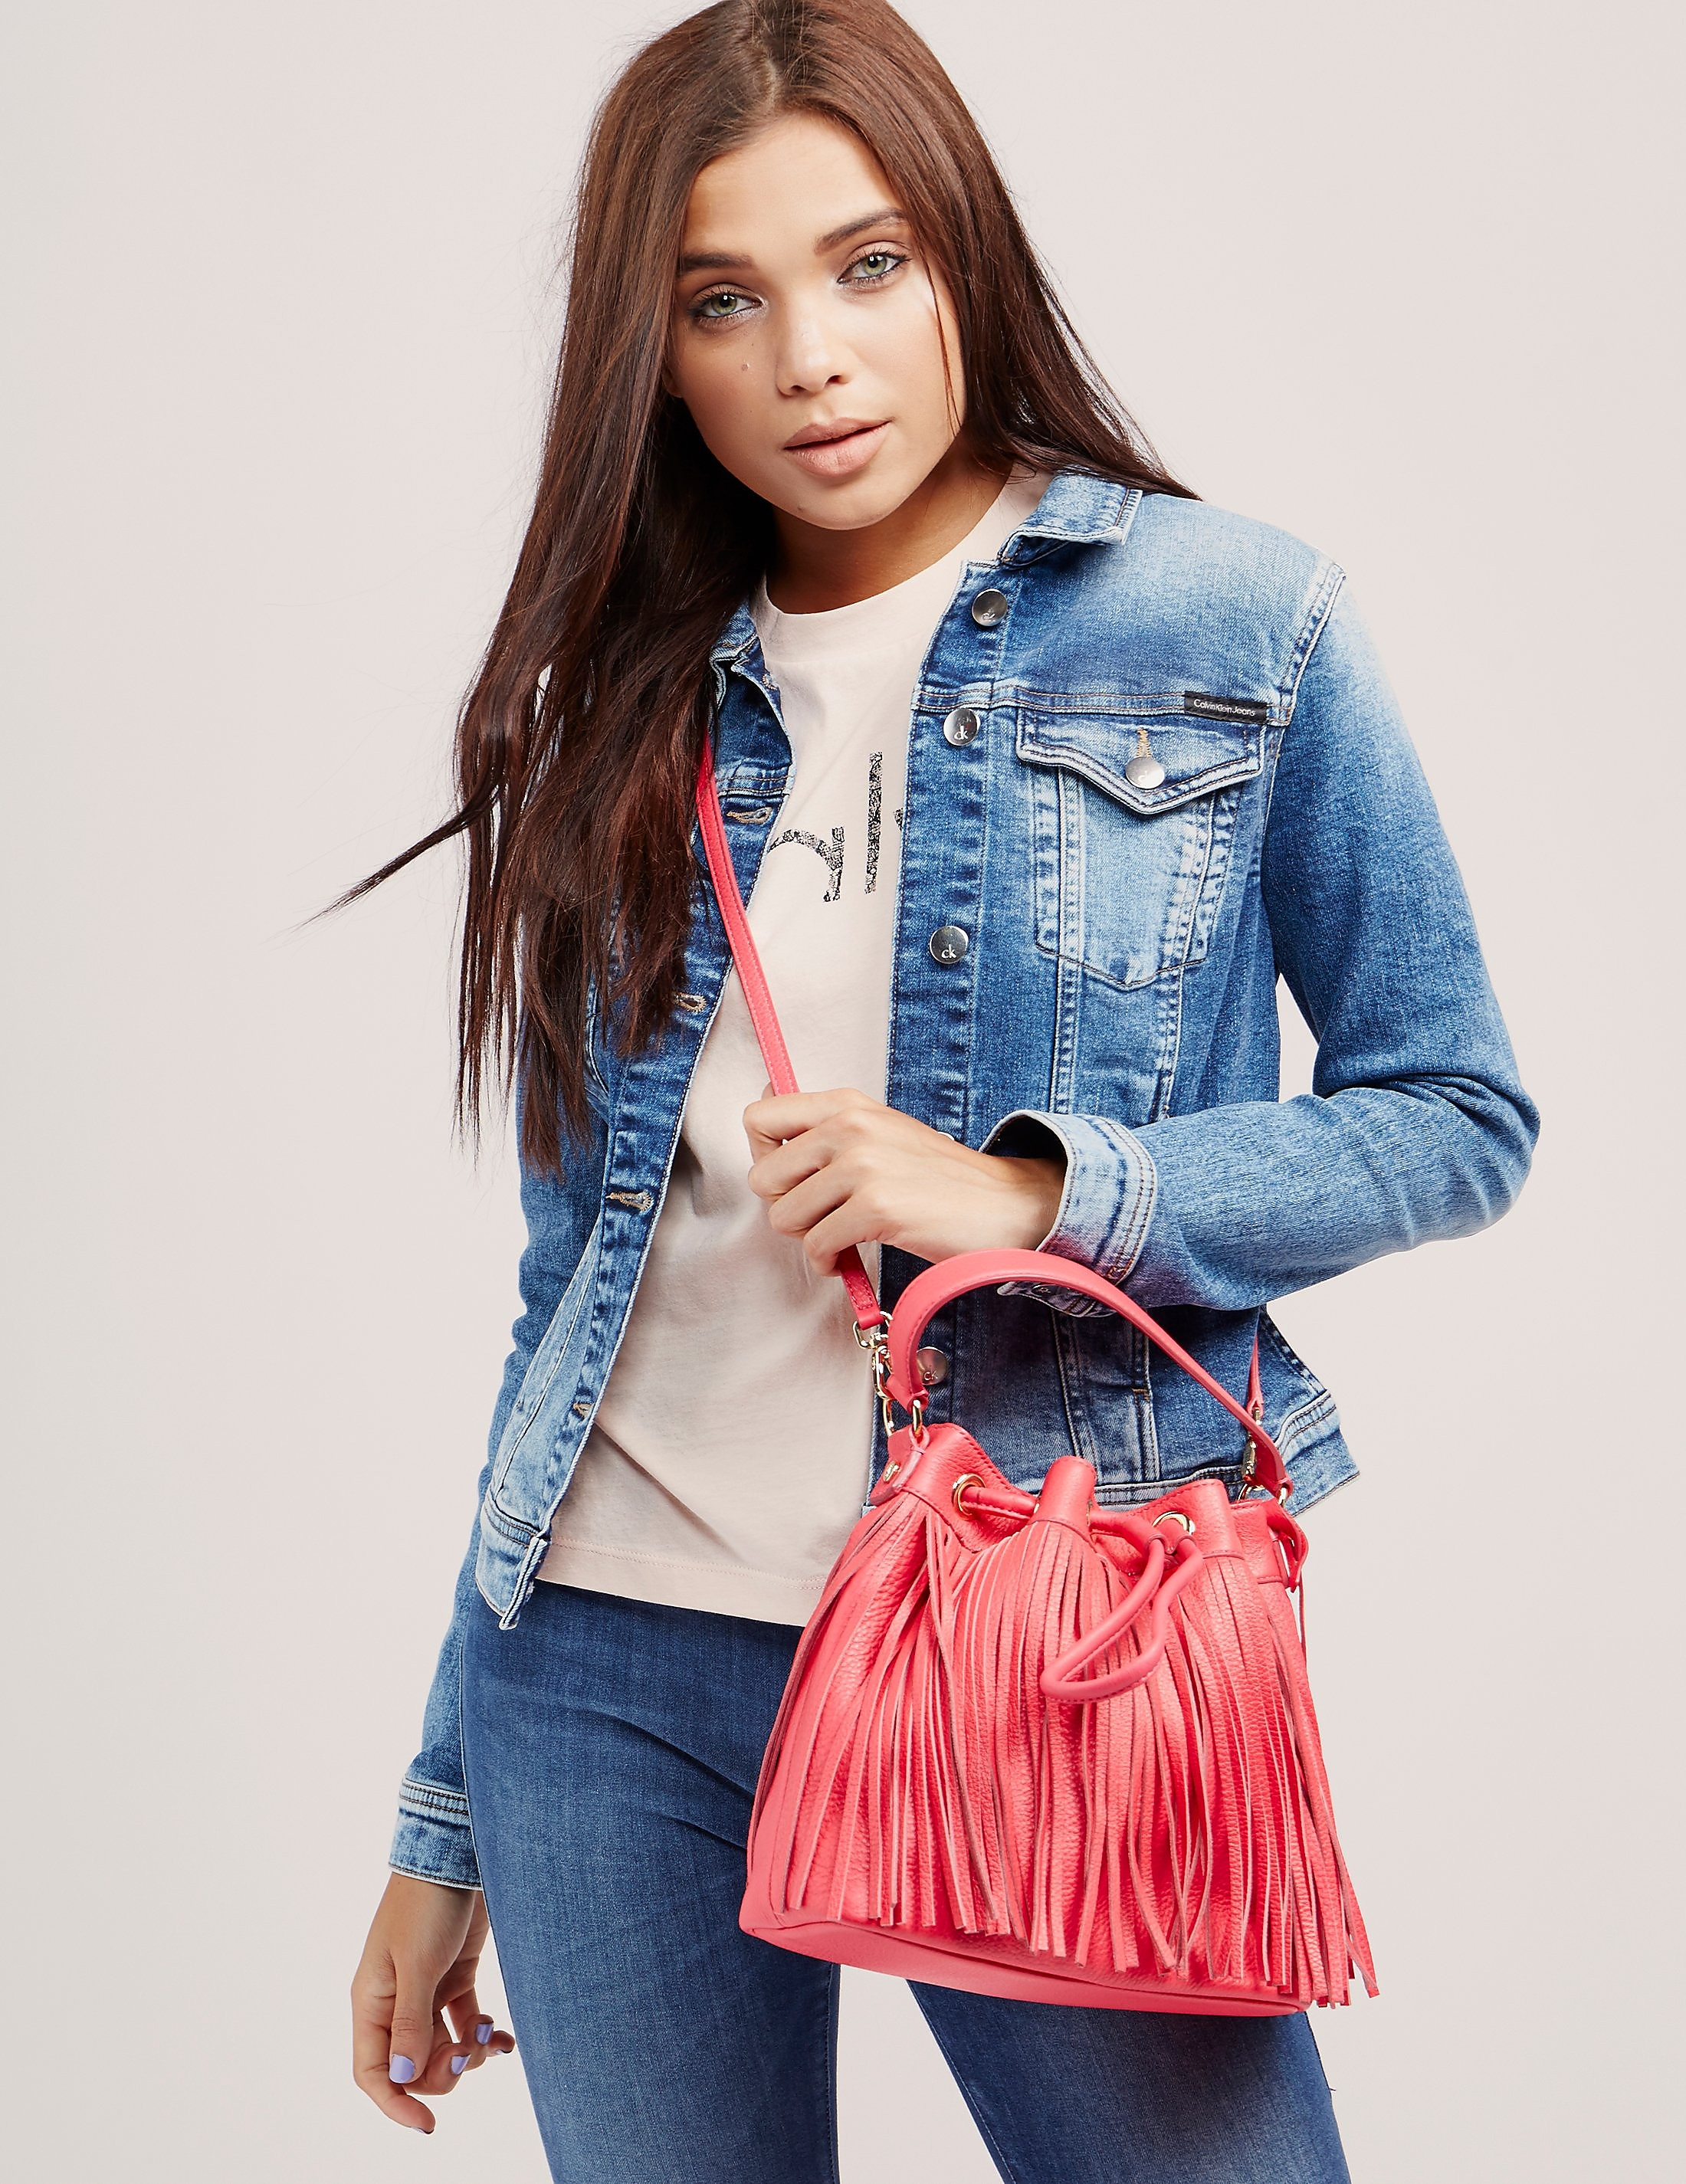 Juicy Couture Topanga Fringe Leather Drawstring Bag